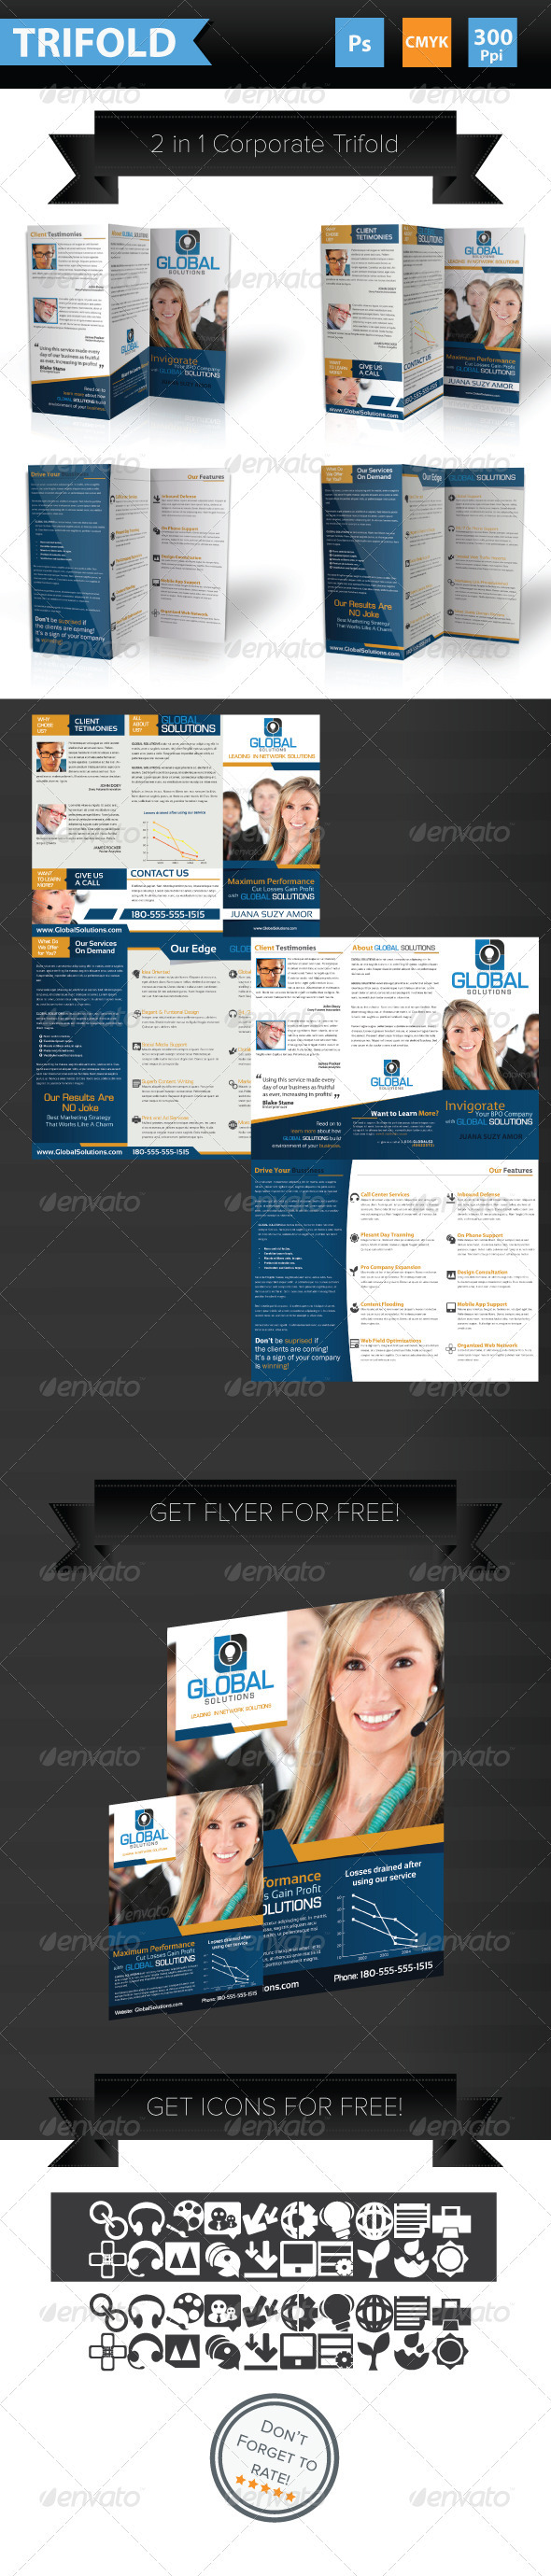 GraphicRiver 2 in 1 Corporate Broshure 3956620